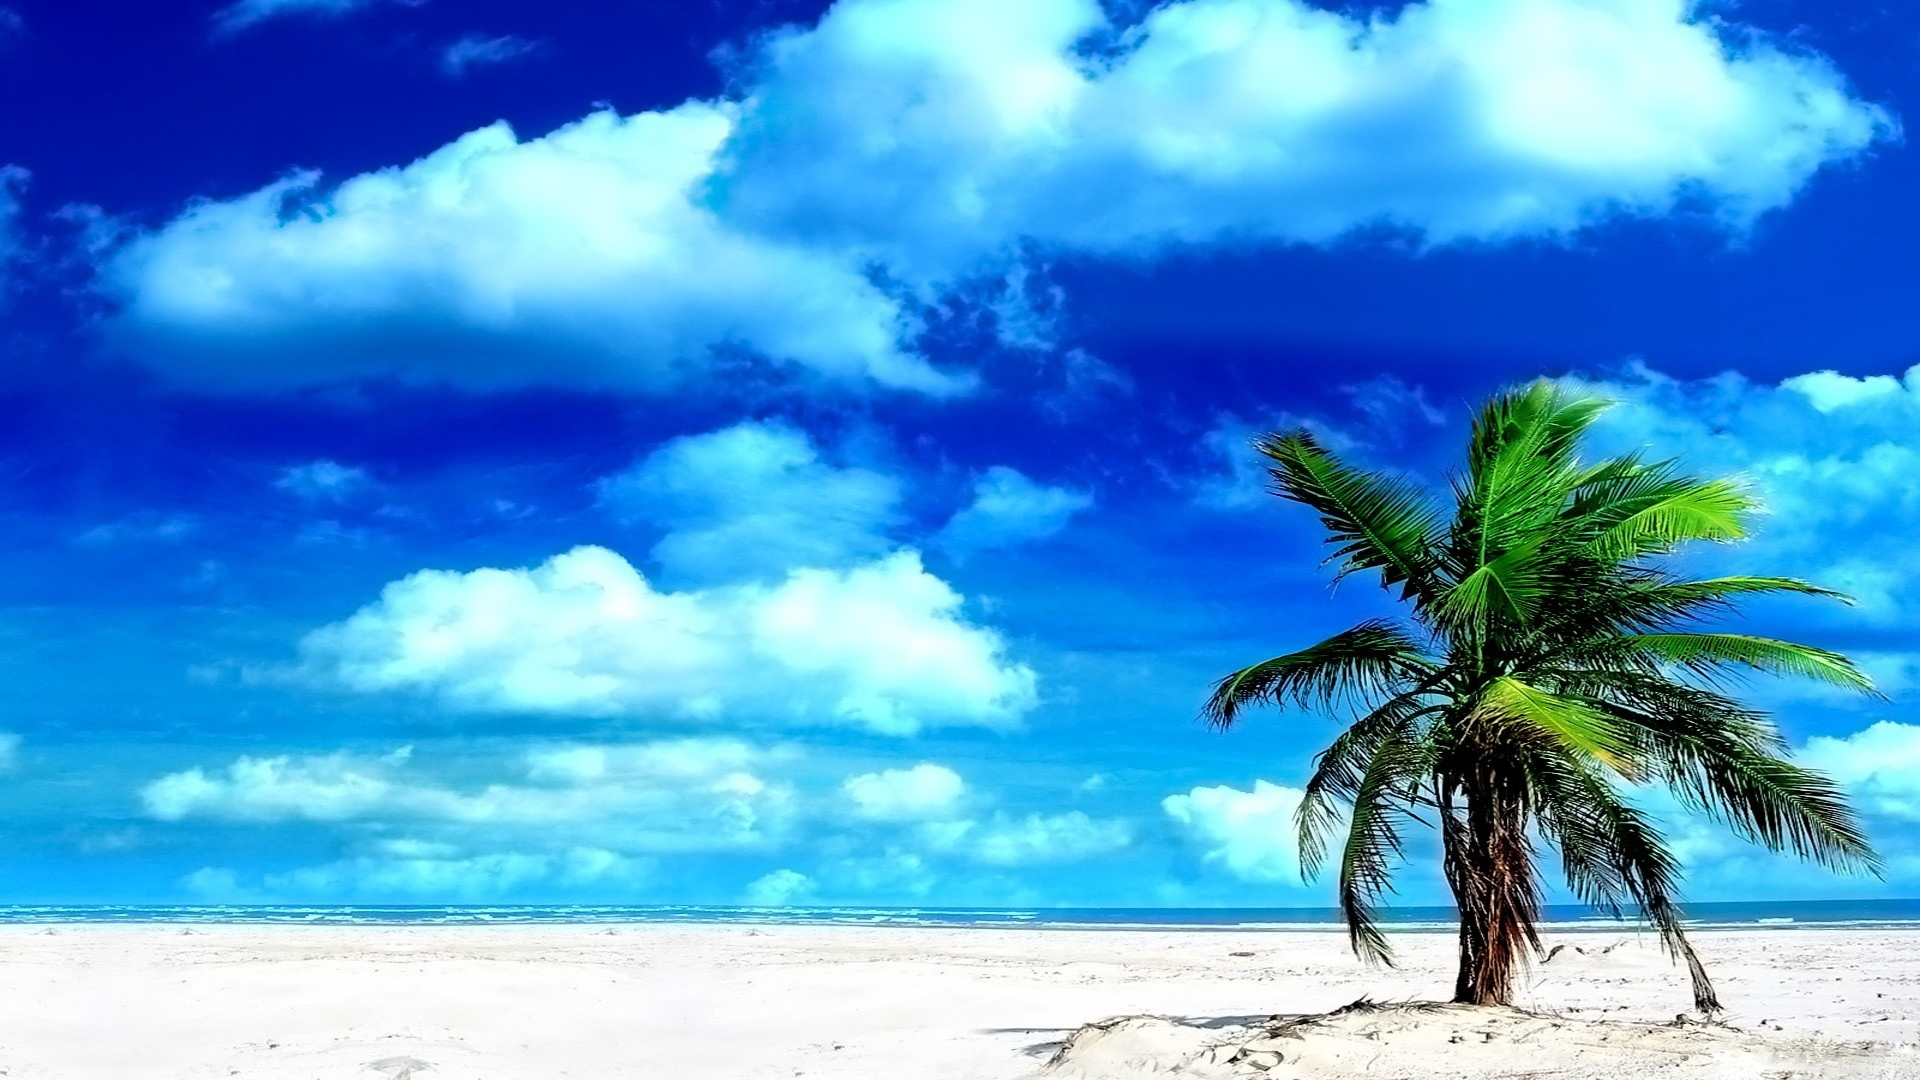 island wallpapers desktop paradise backgrounds 1920x1080 1920x1080